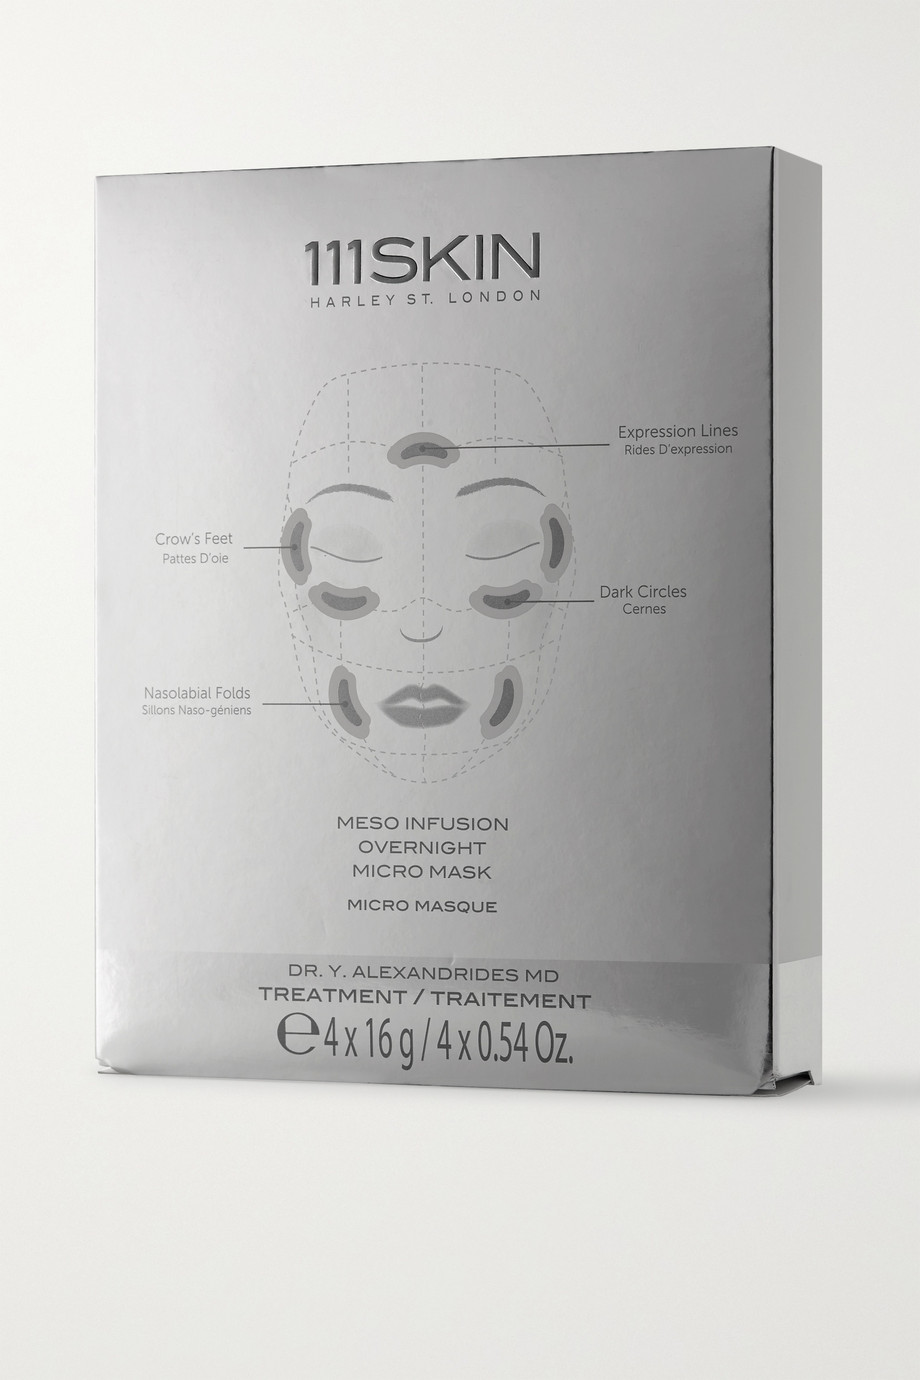 111SKIN Meso Infusion Overnight Micro Mask x 4